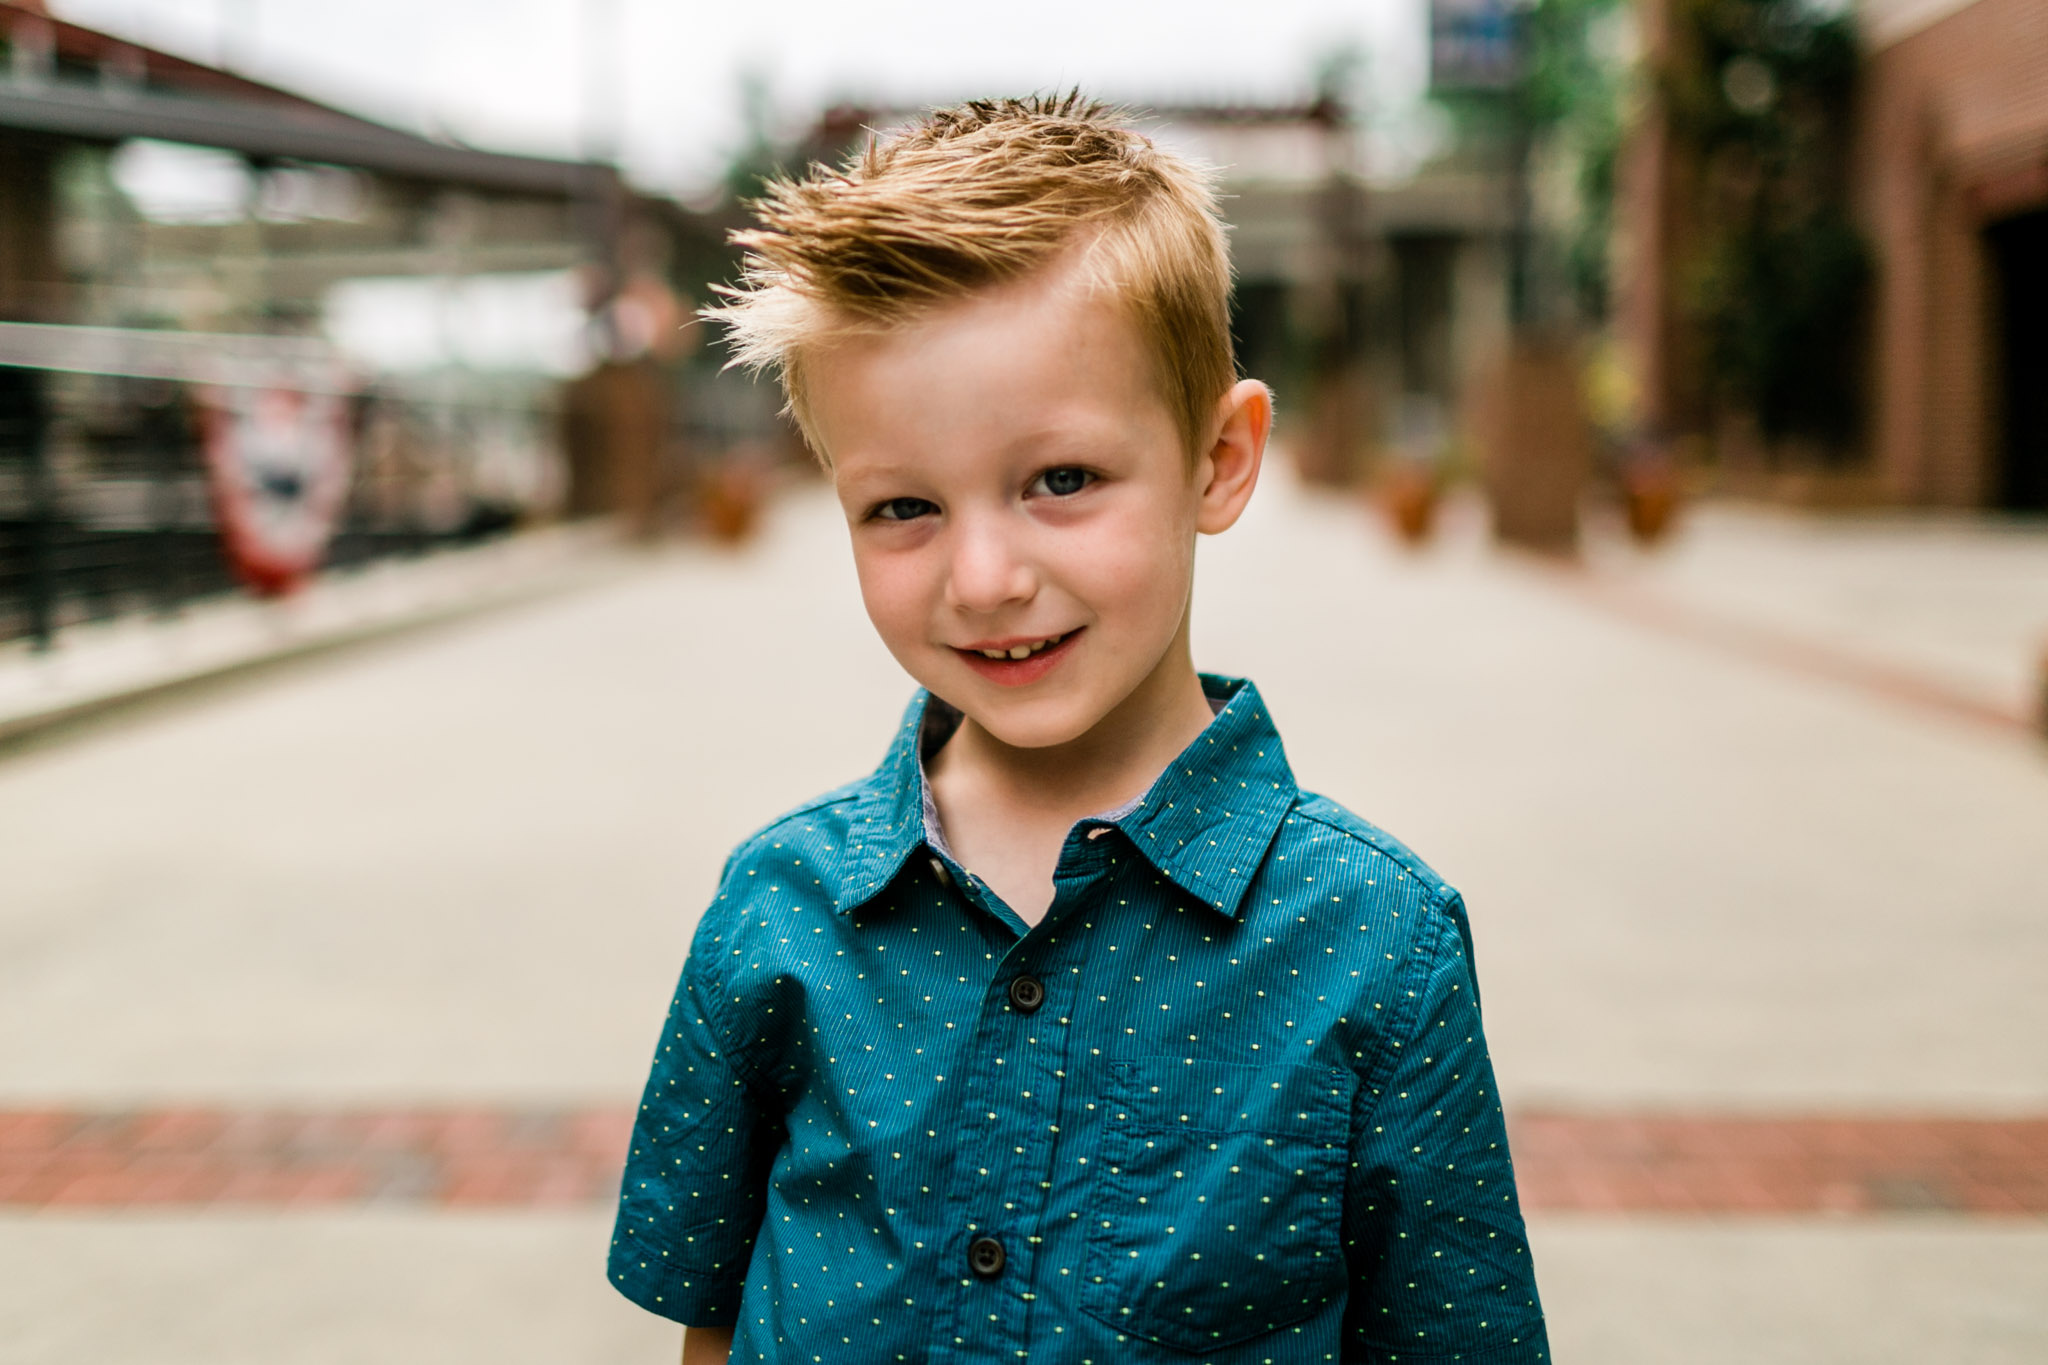 Durham Family Photographer | By G. Lin Photography | Close up photo of young boy smiling at camera